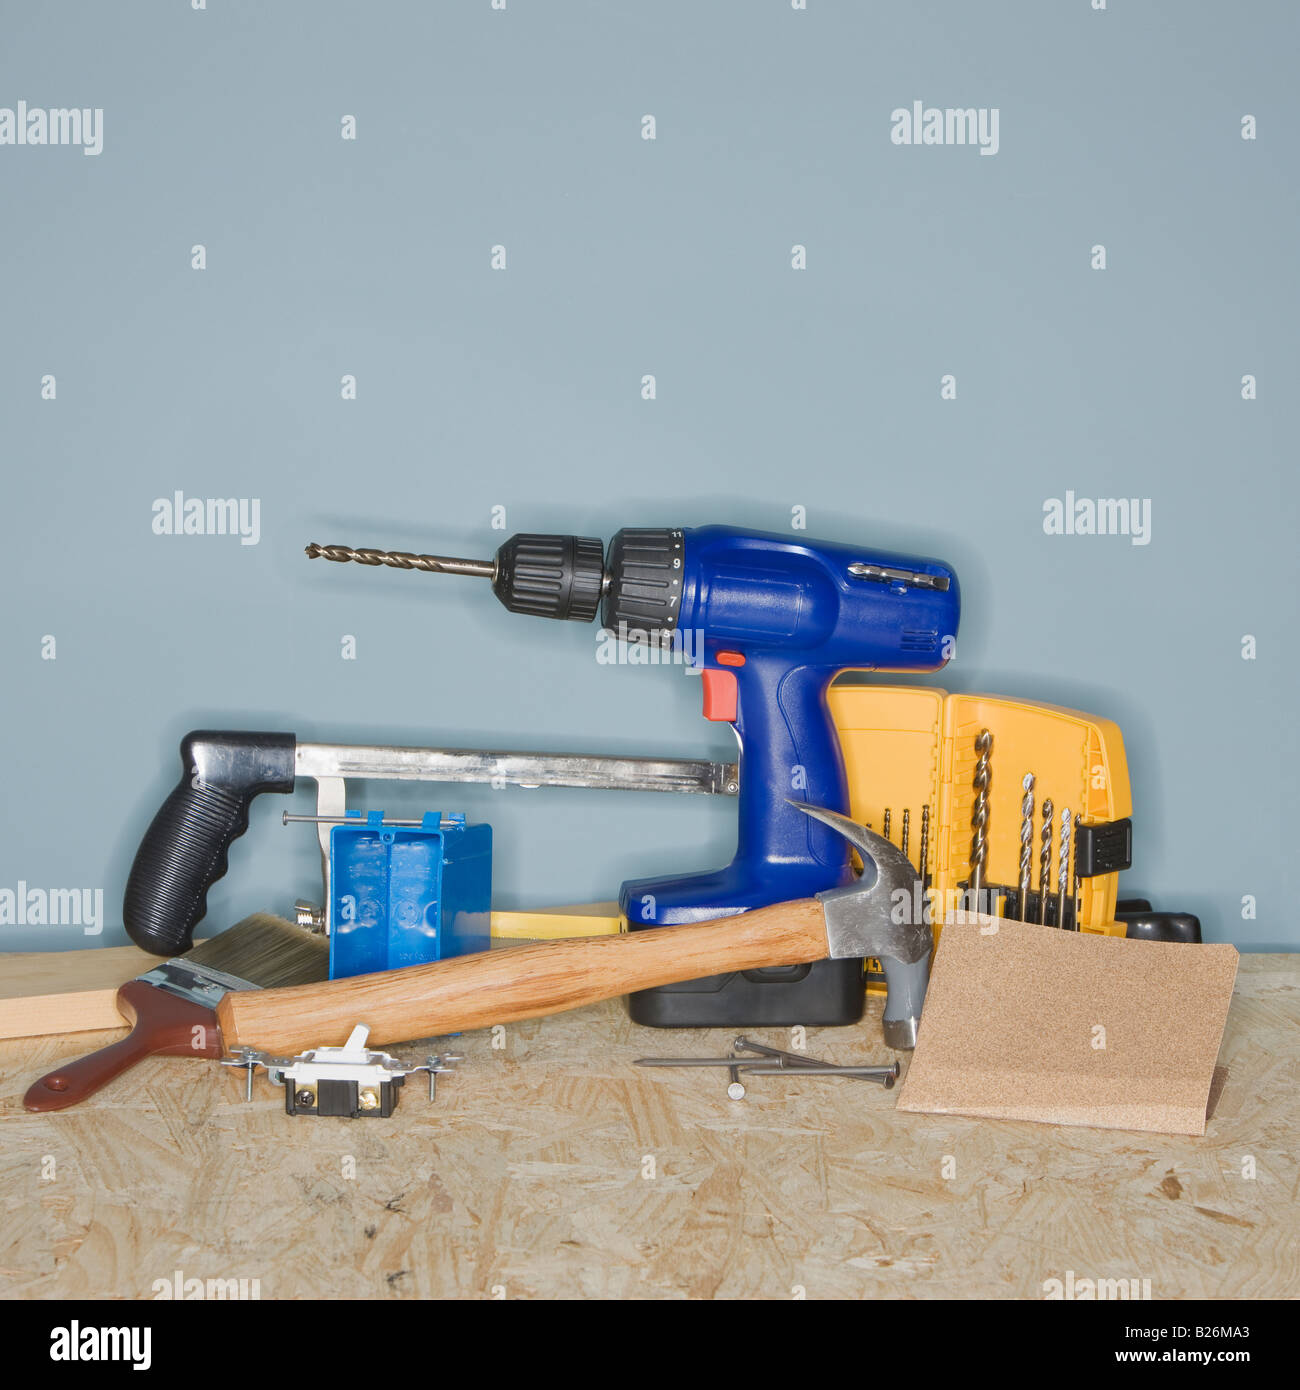 Assorted home improvement tools - Stock Image